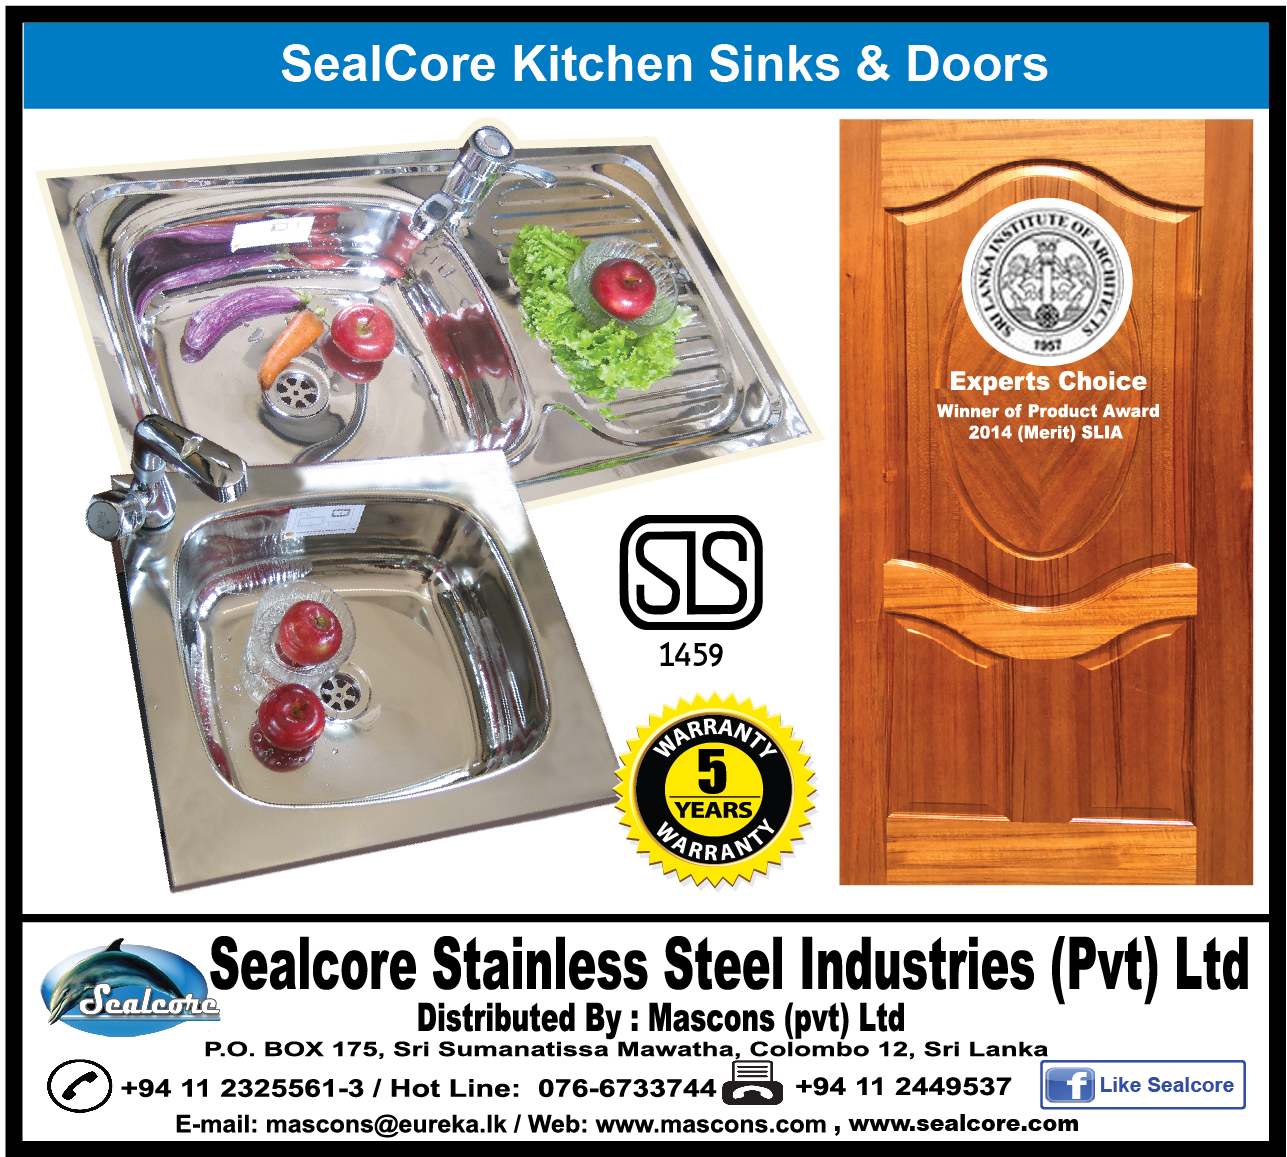 Hotels - Sealcore Stainless Steel Industries (Pvt) Ltd - Sanitaryware